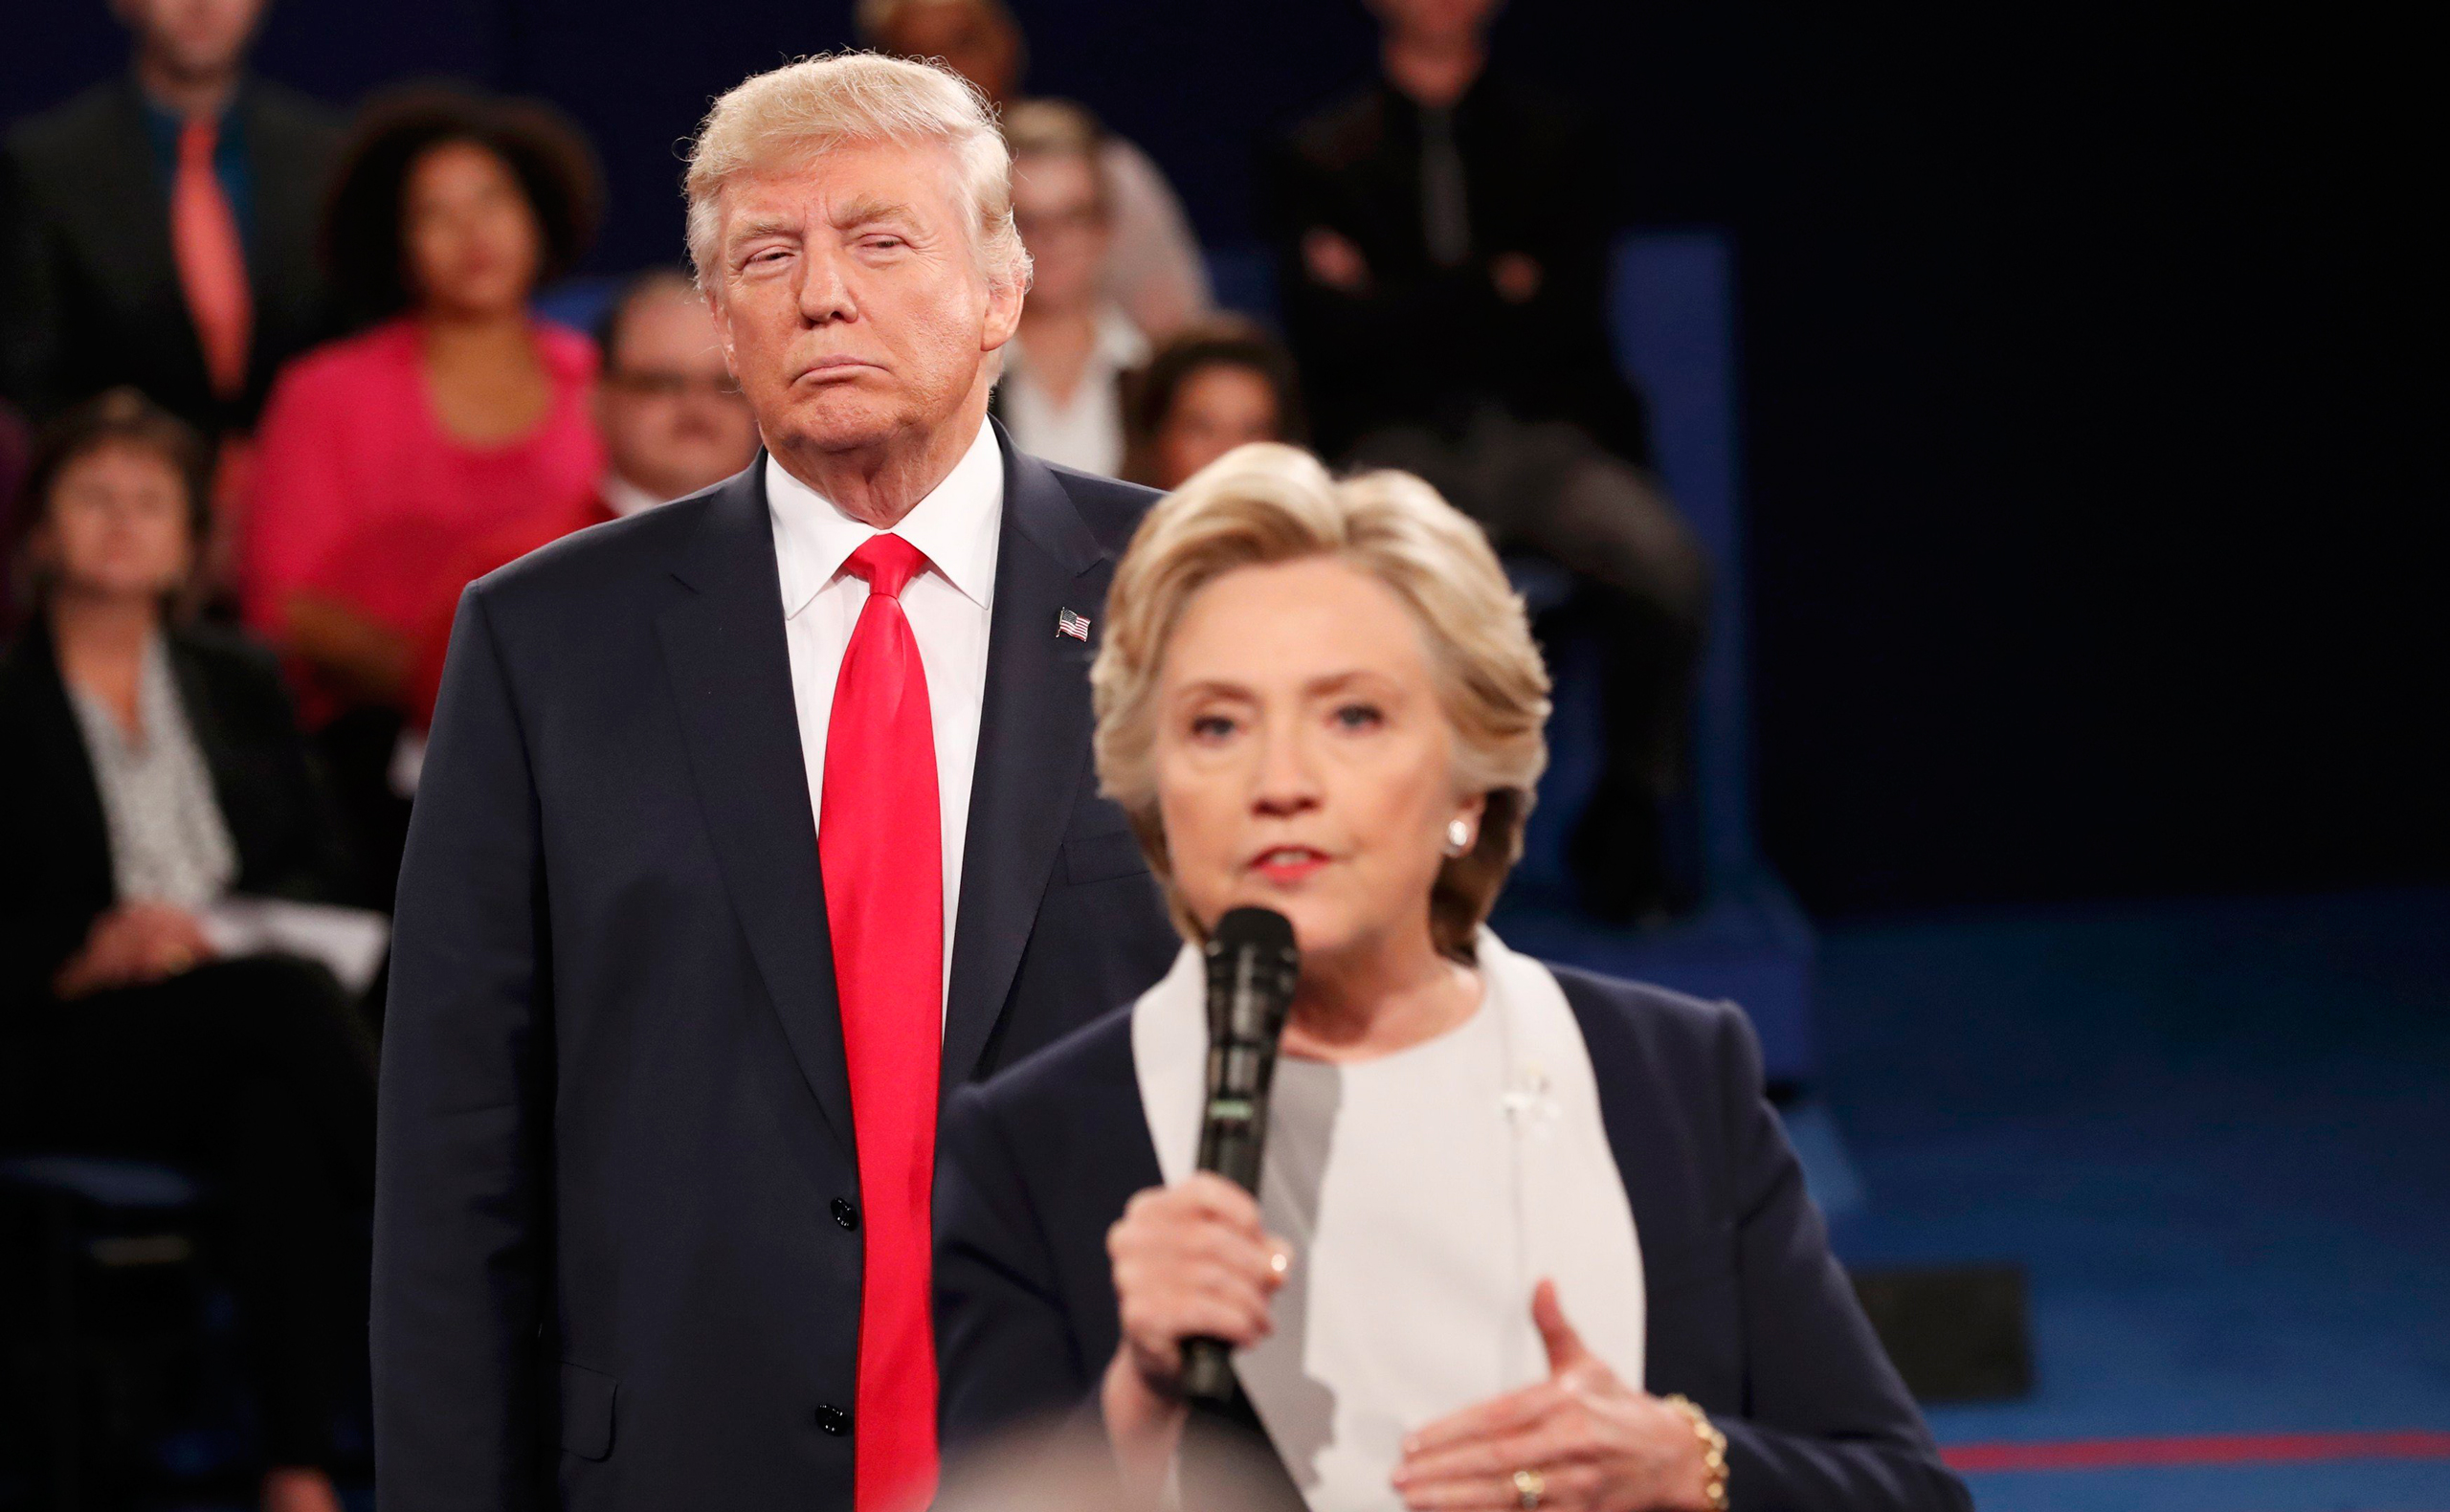 Republican presidential nominee Donald Trump listens as Democratic nominee Hillary Clinton answers a question from the audience during the second presidential debate at Washington University in St. Louis on Oct. 9, 2016.